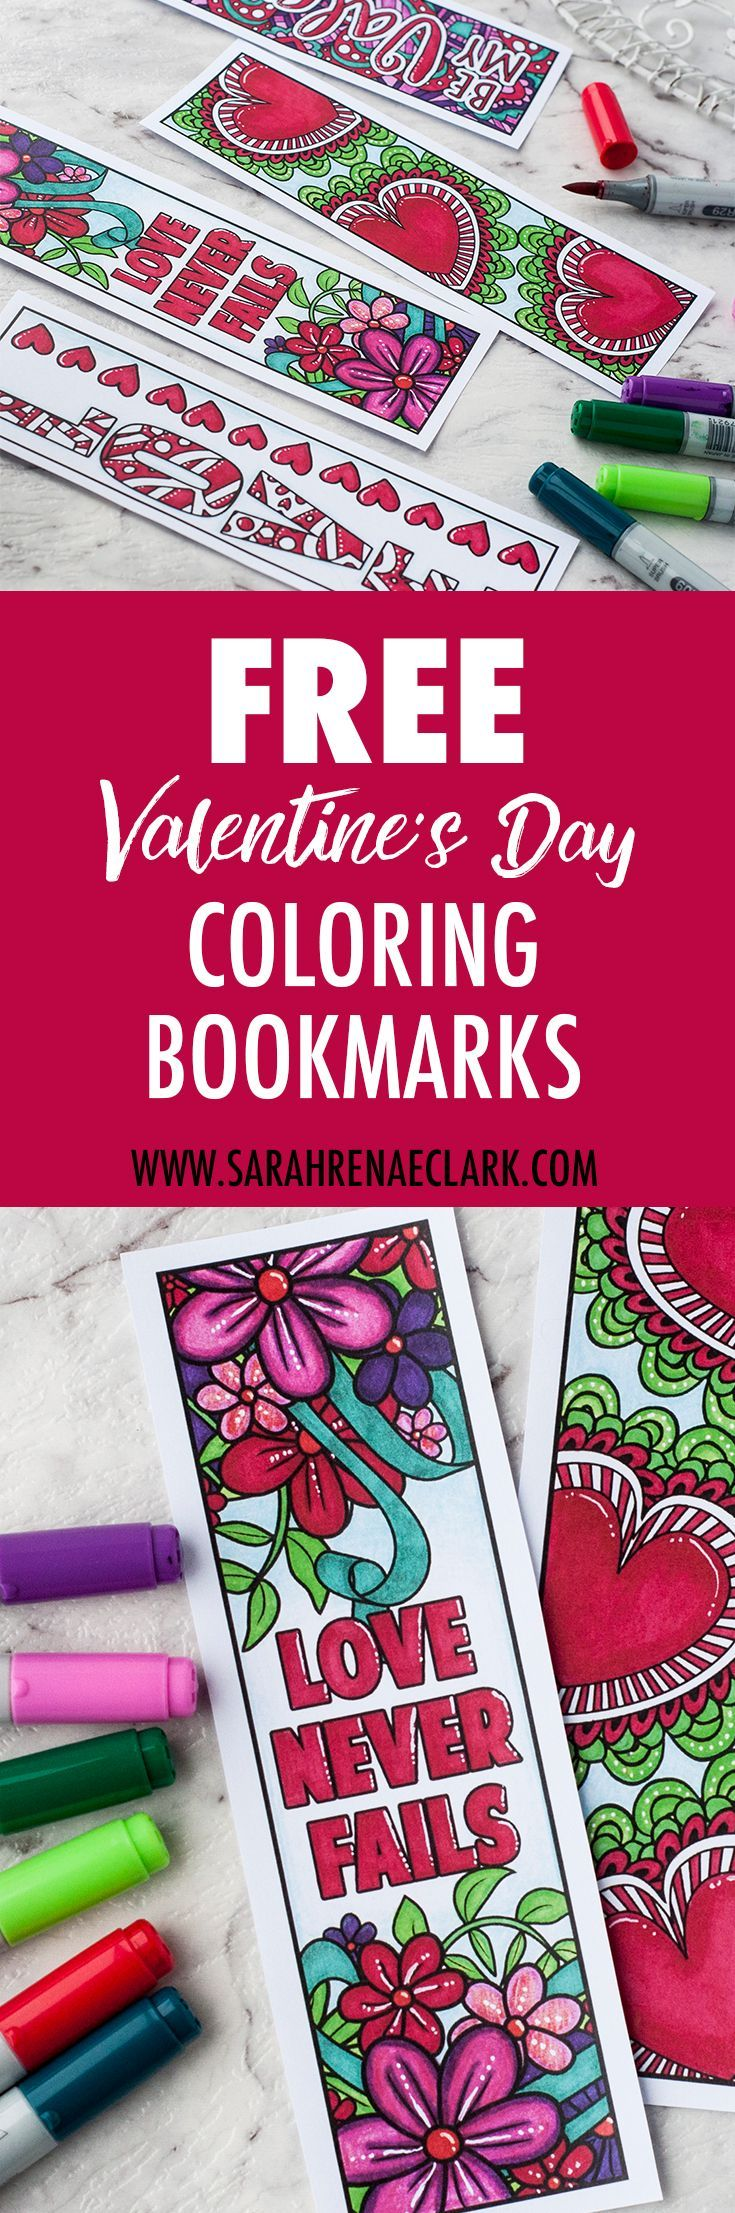 118 best Inspirational Coloring images on Pinterest | A year ...